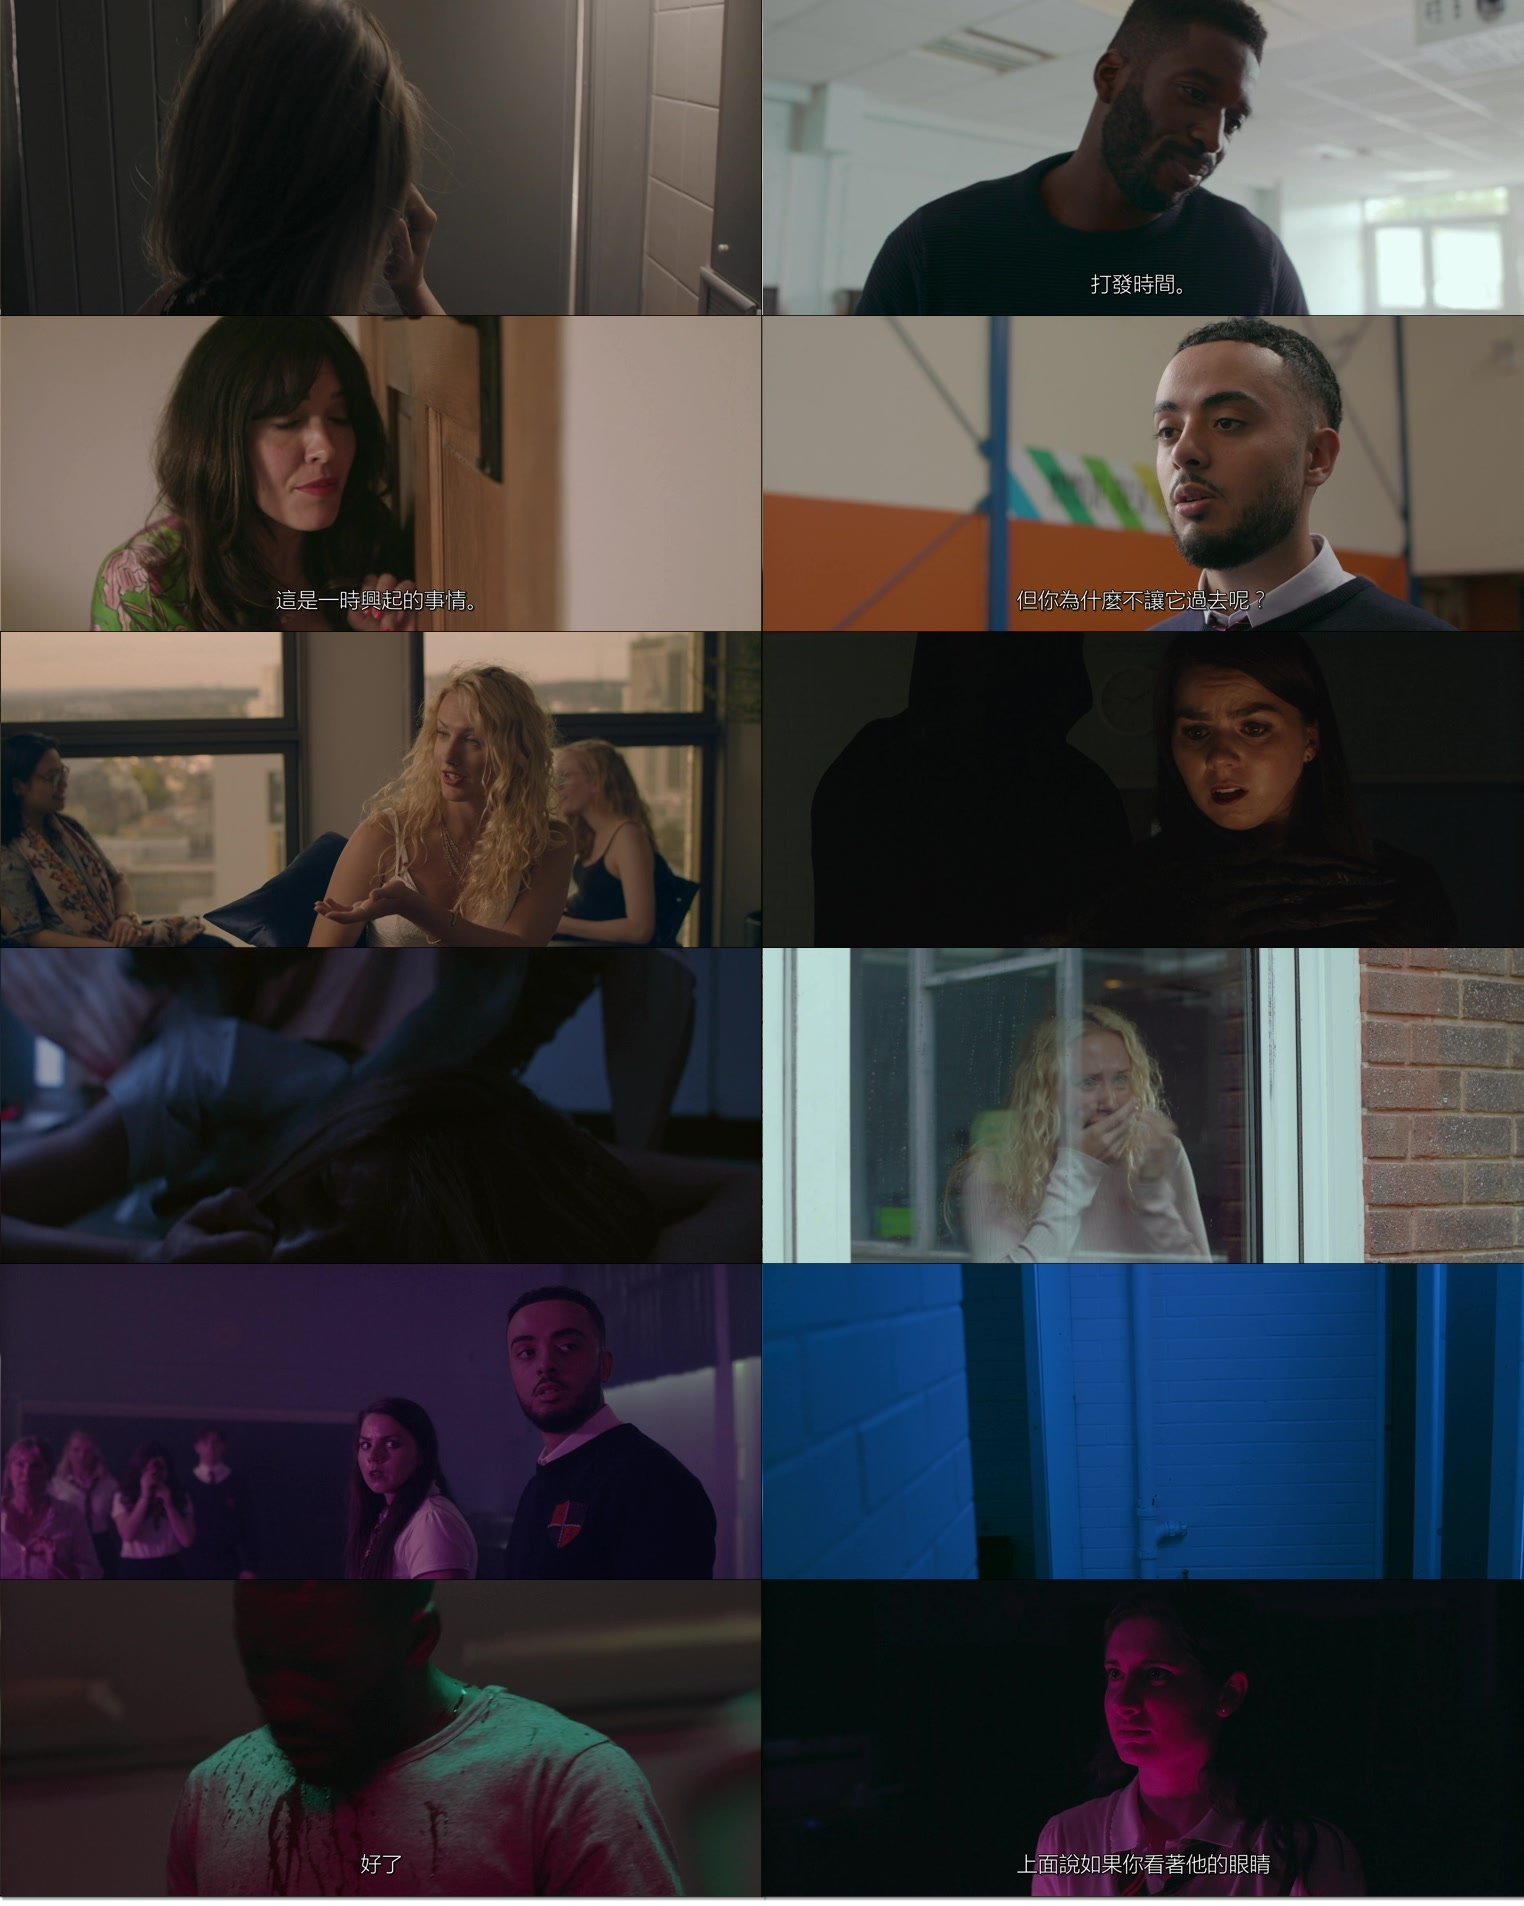 Cupid.2020.1080p.WEB-DL.H264.AC3-EVO.mkv